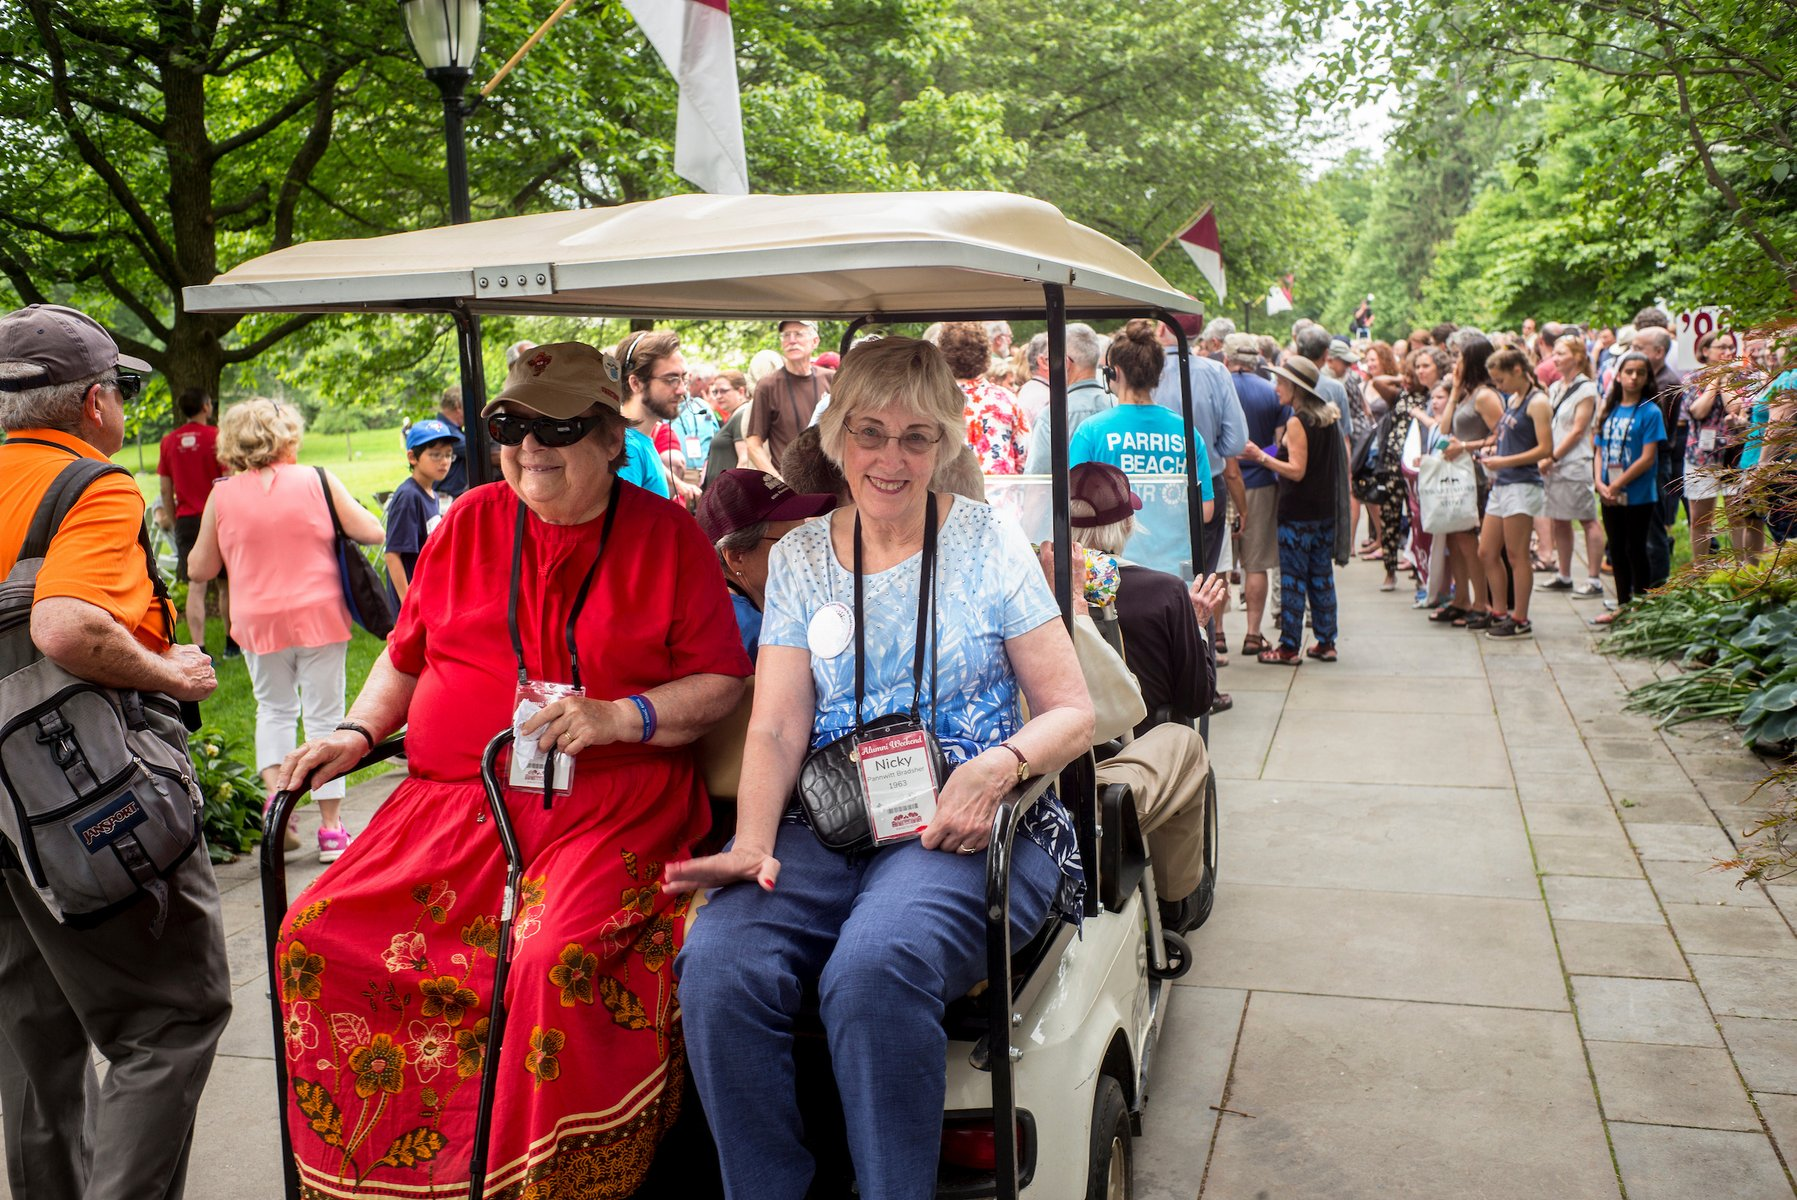 Alumni ride on a golf cart during the Parade of Classes